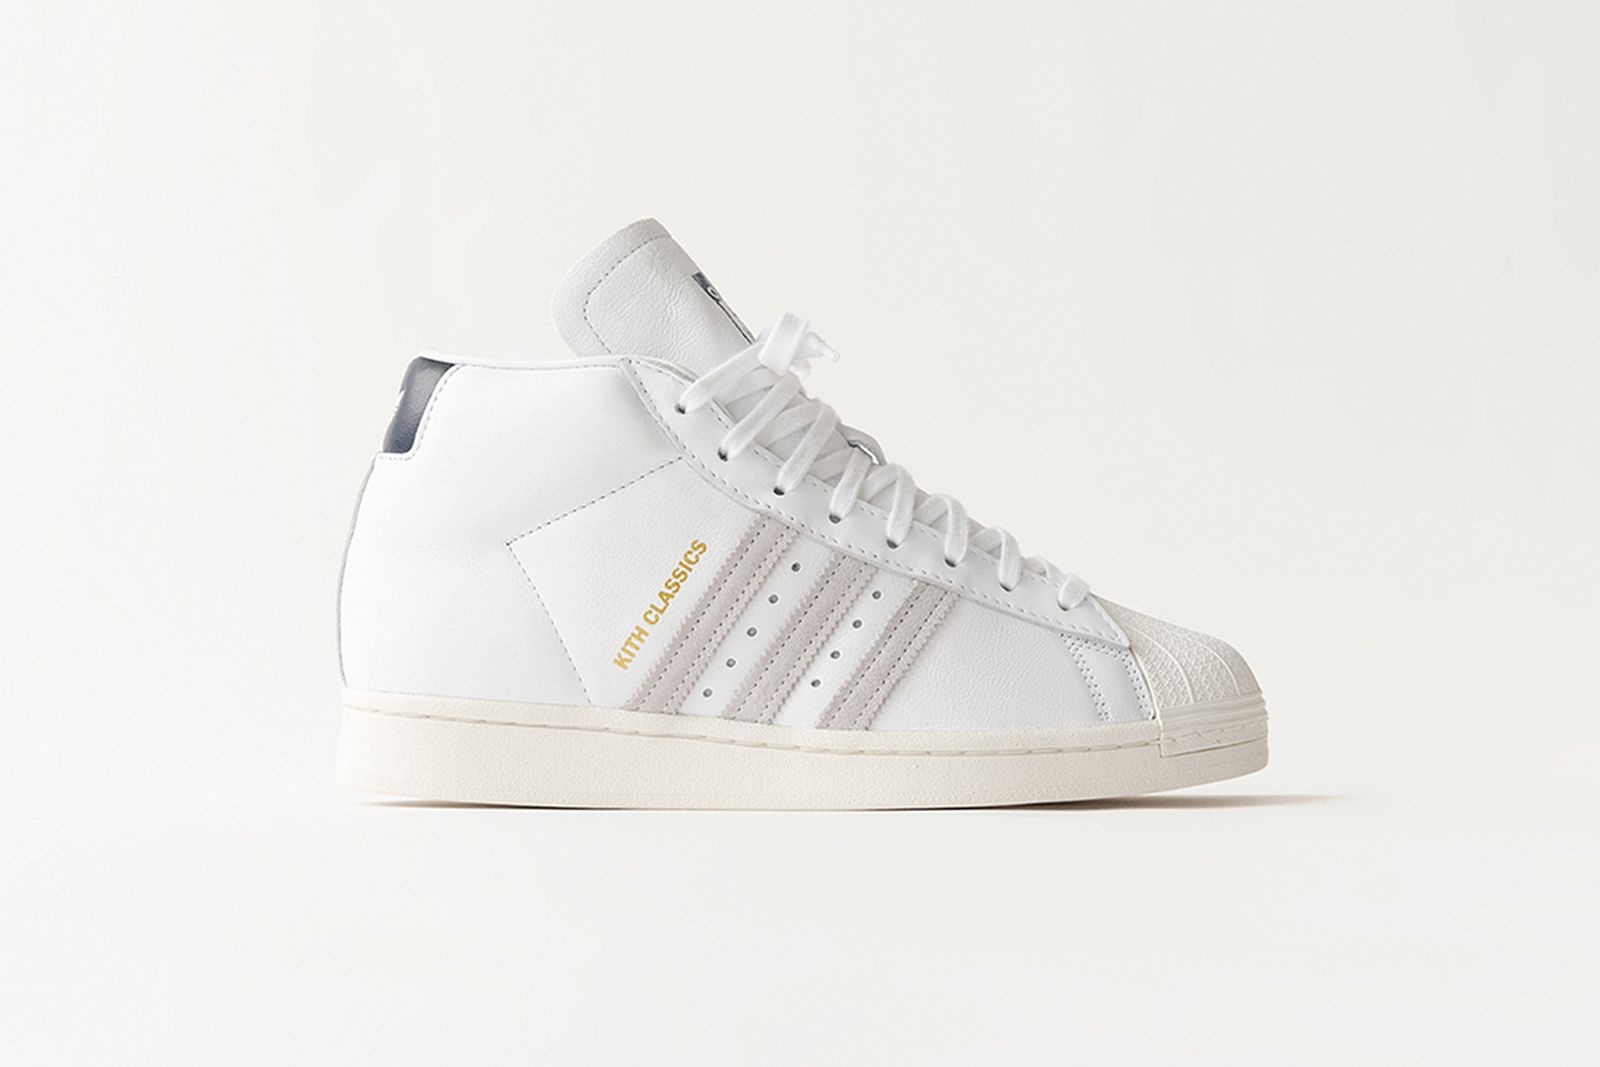 kith-adidas-summer-2021-release-info-10